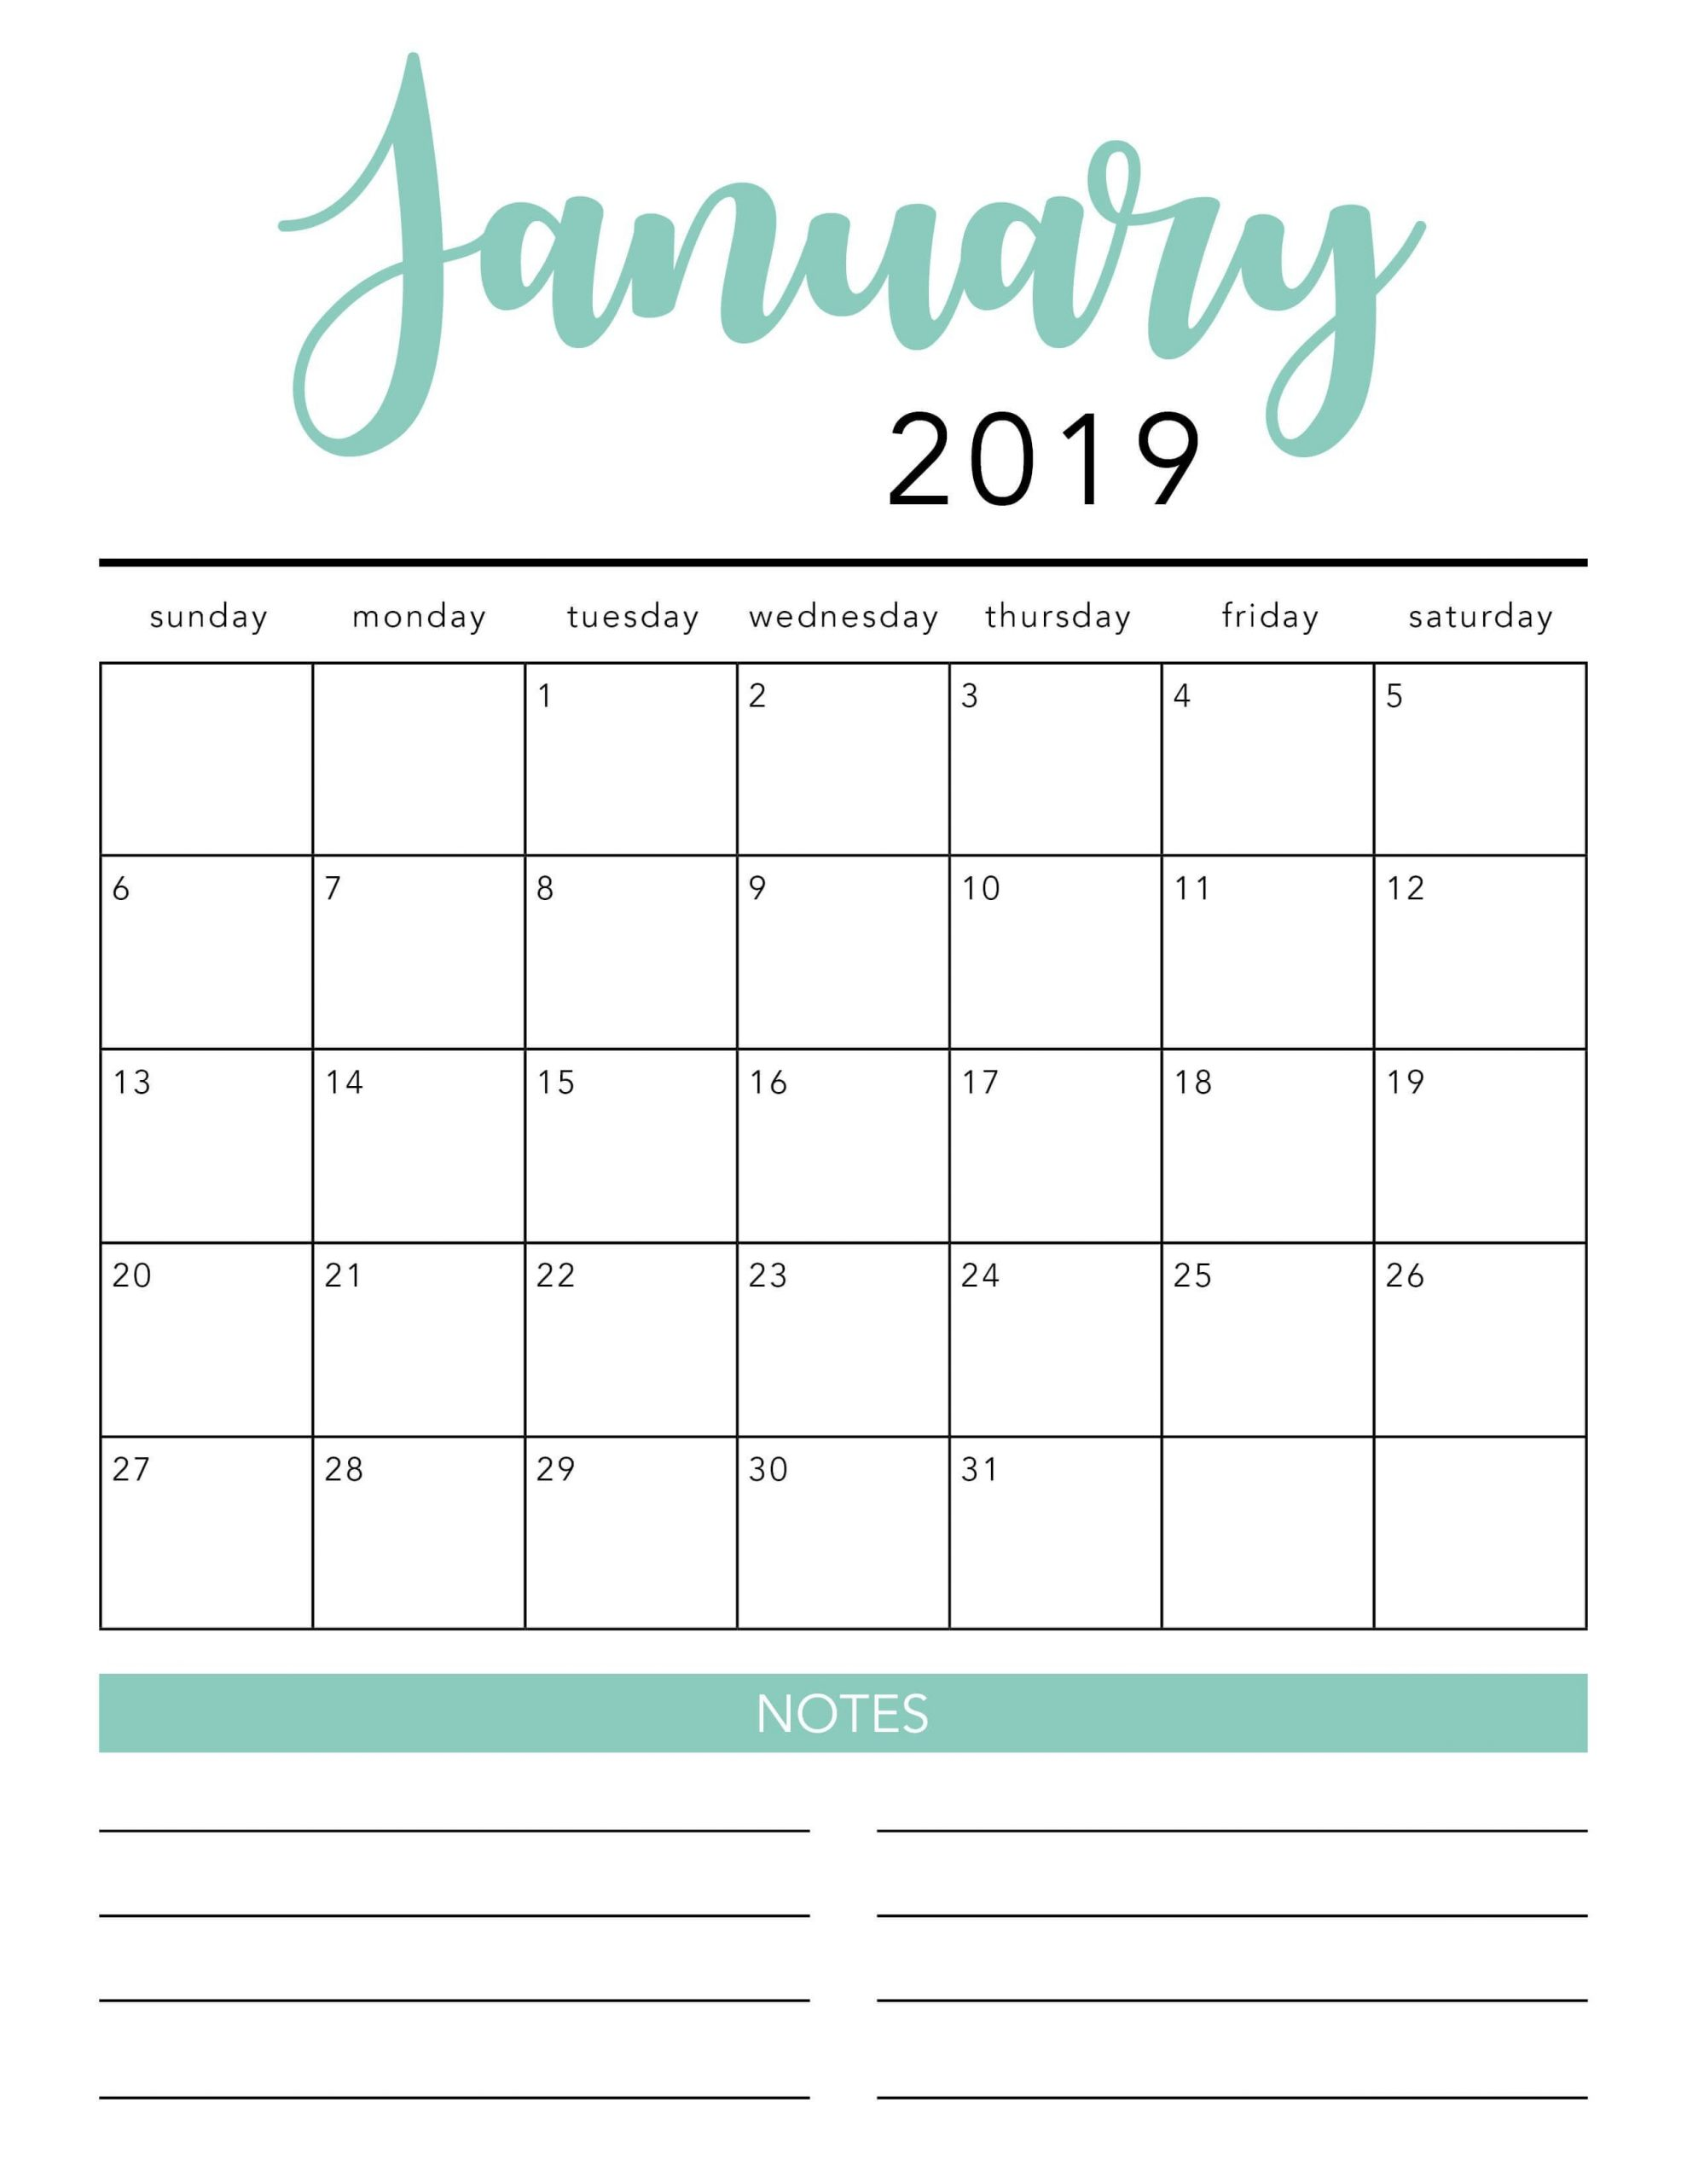 Free 2020 Printable Calendar Template (2 Colors!) - I 3 Month Calendar Printable Free